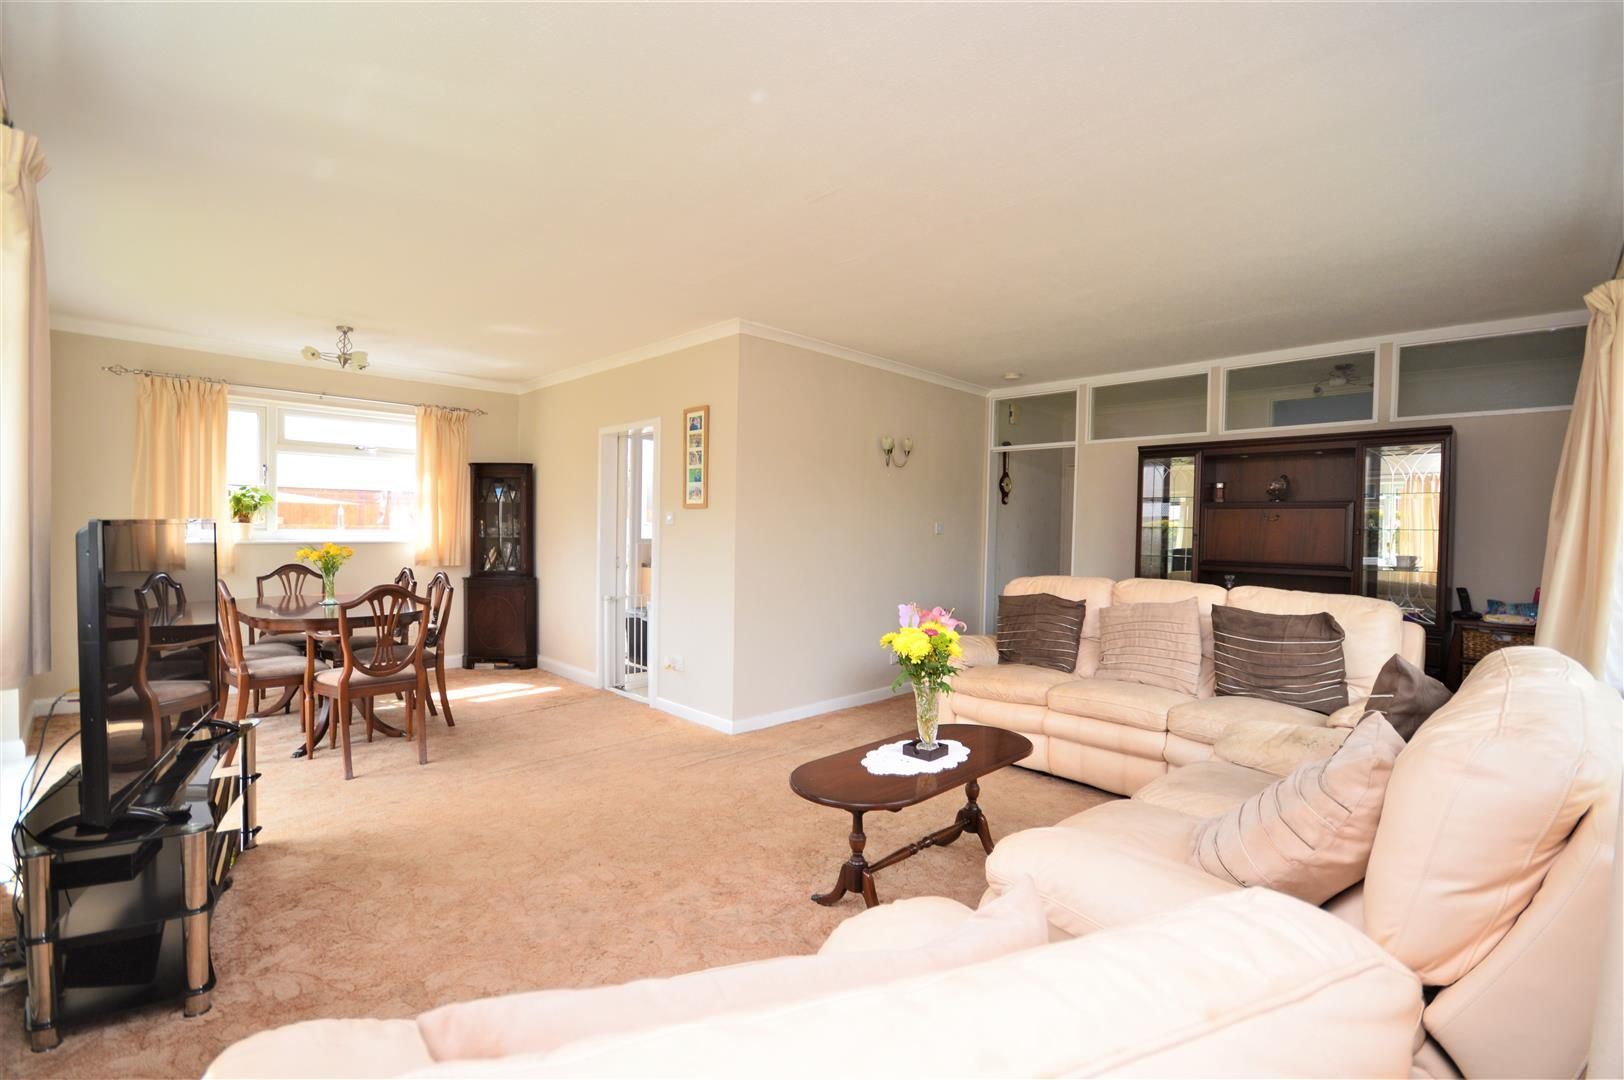 4 bed detached-bungalow for sale in Marden 4